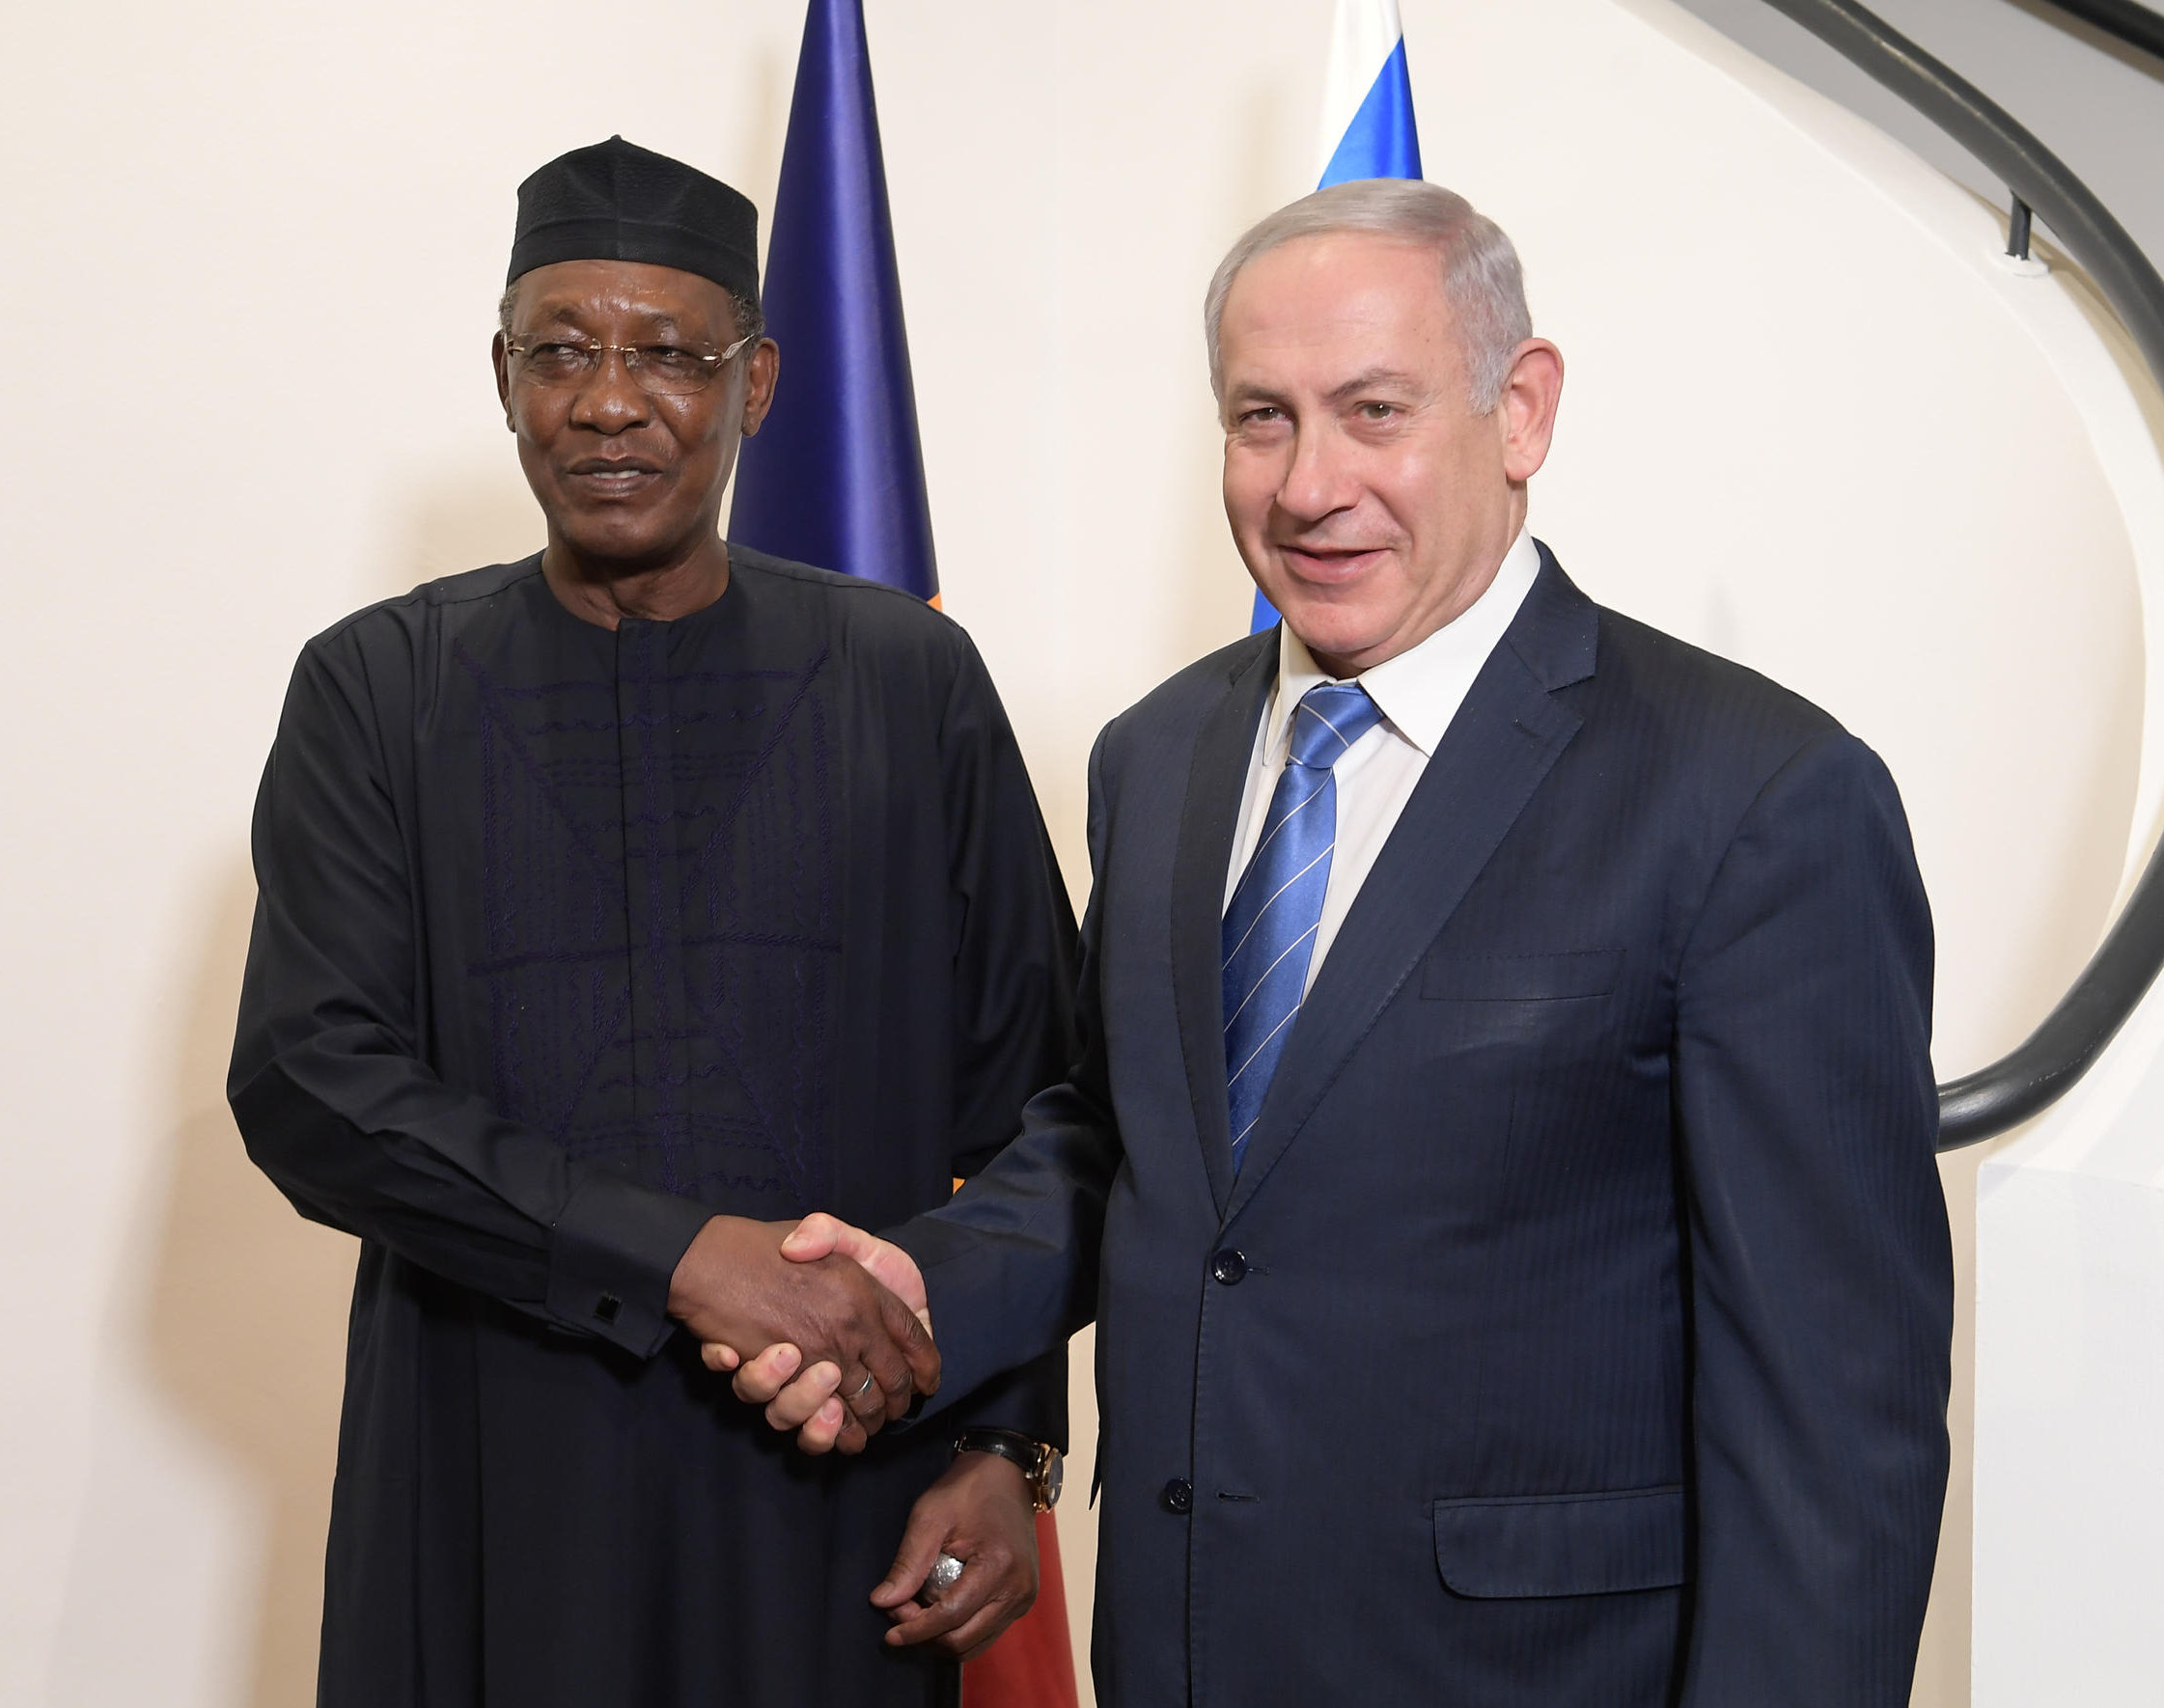 PM Netanyahu & Chad Pres. Deby at the PM's Residence in Jerusalem